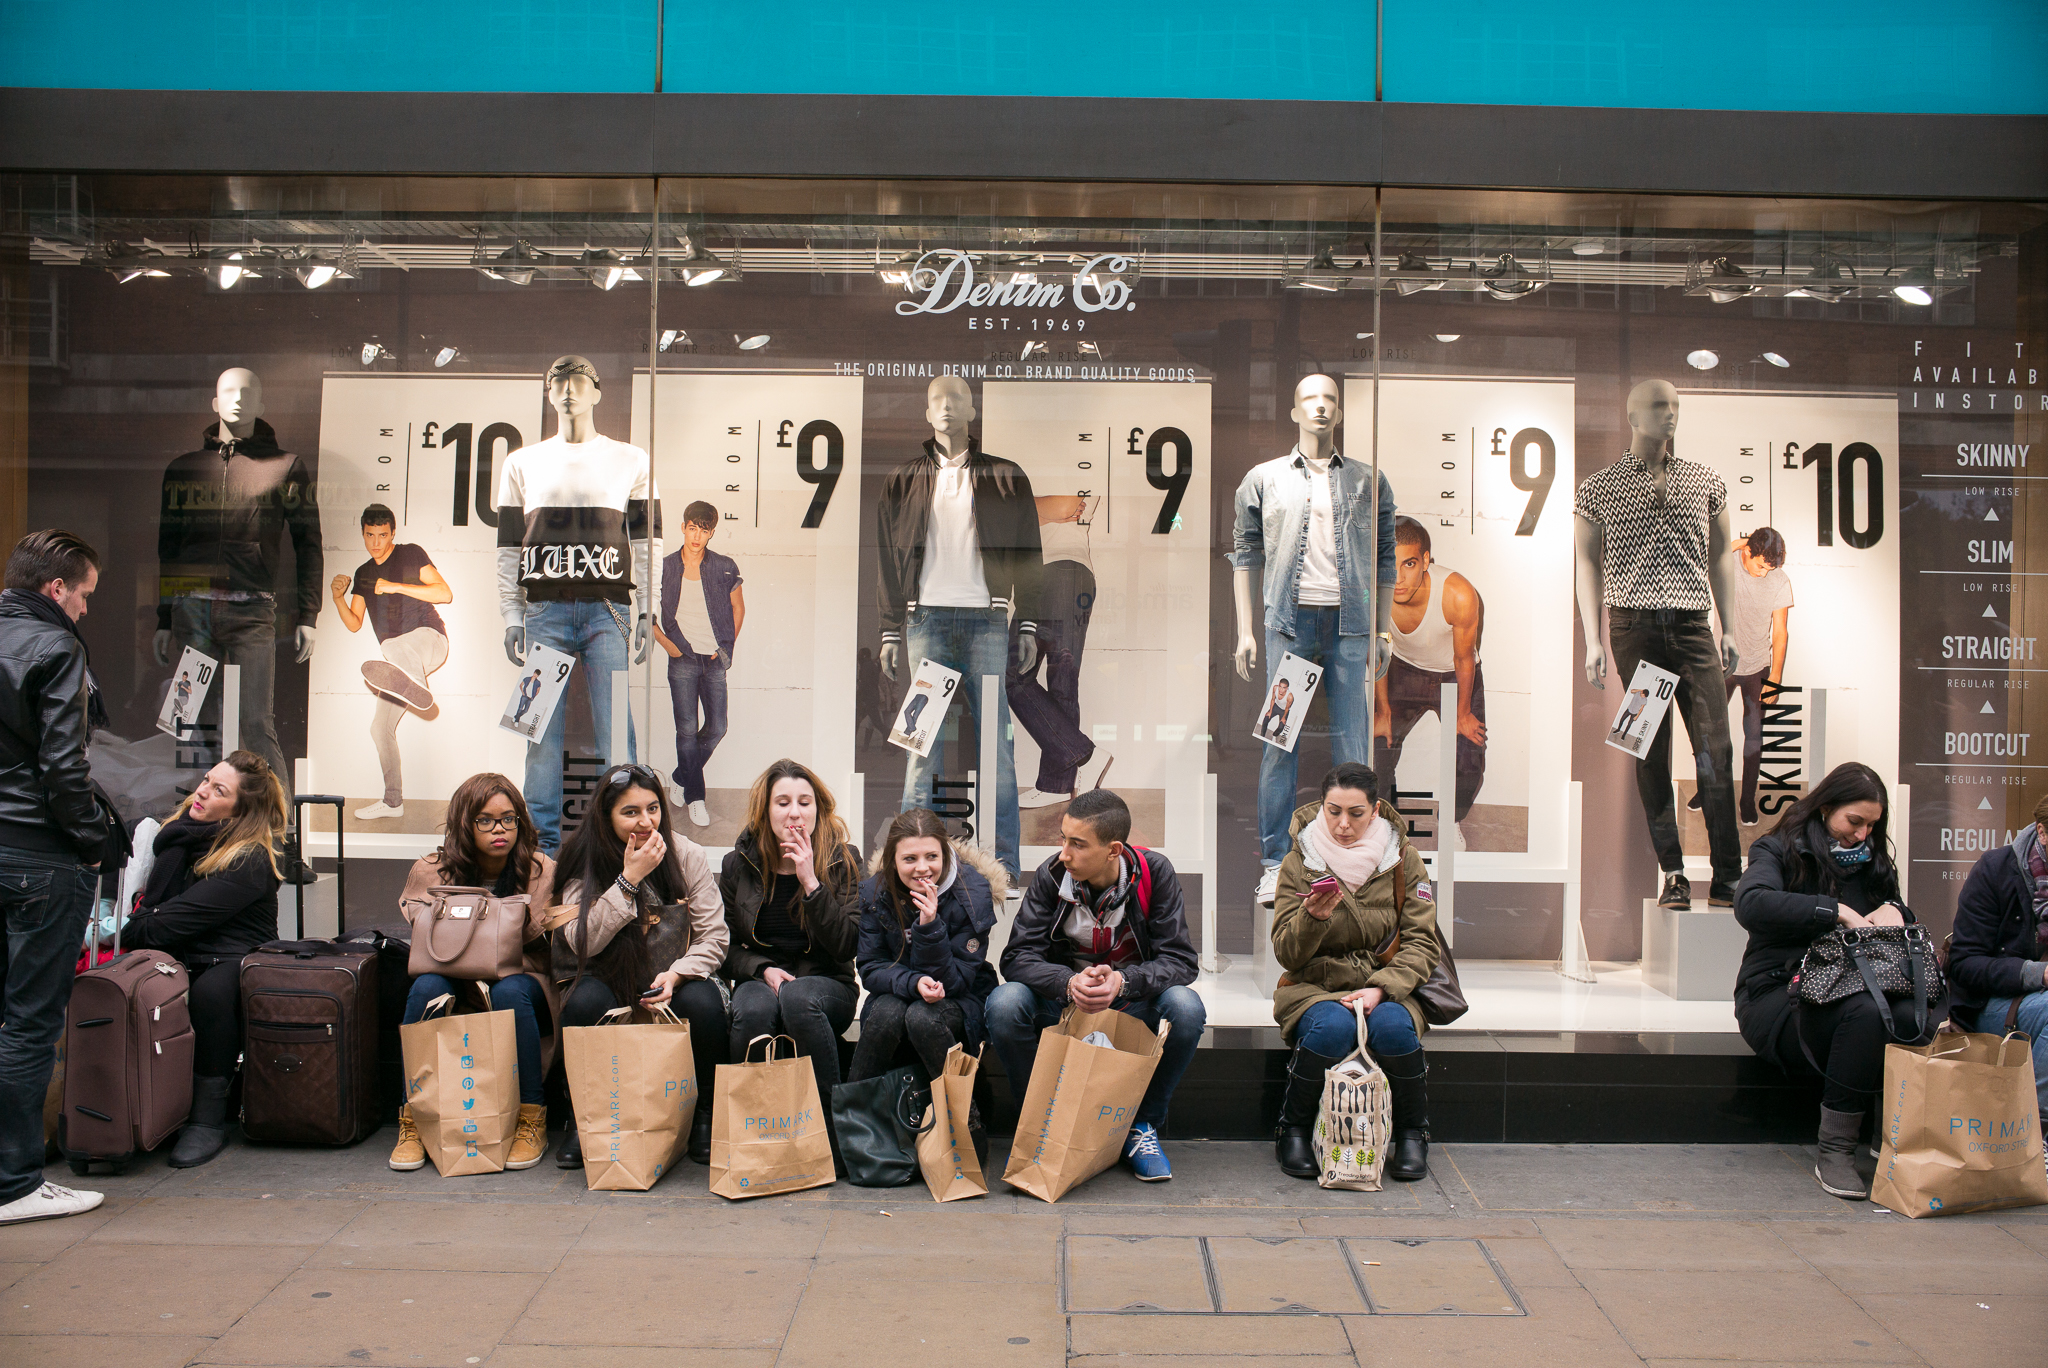 Shoppers sit outside of a clothing store.